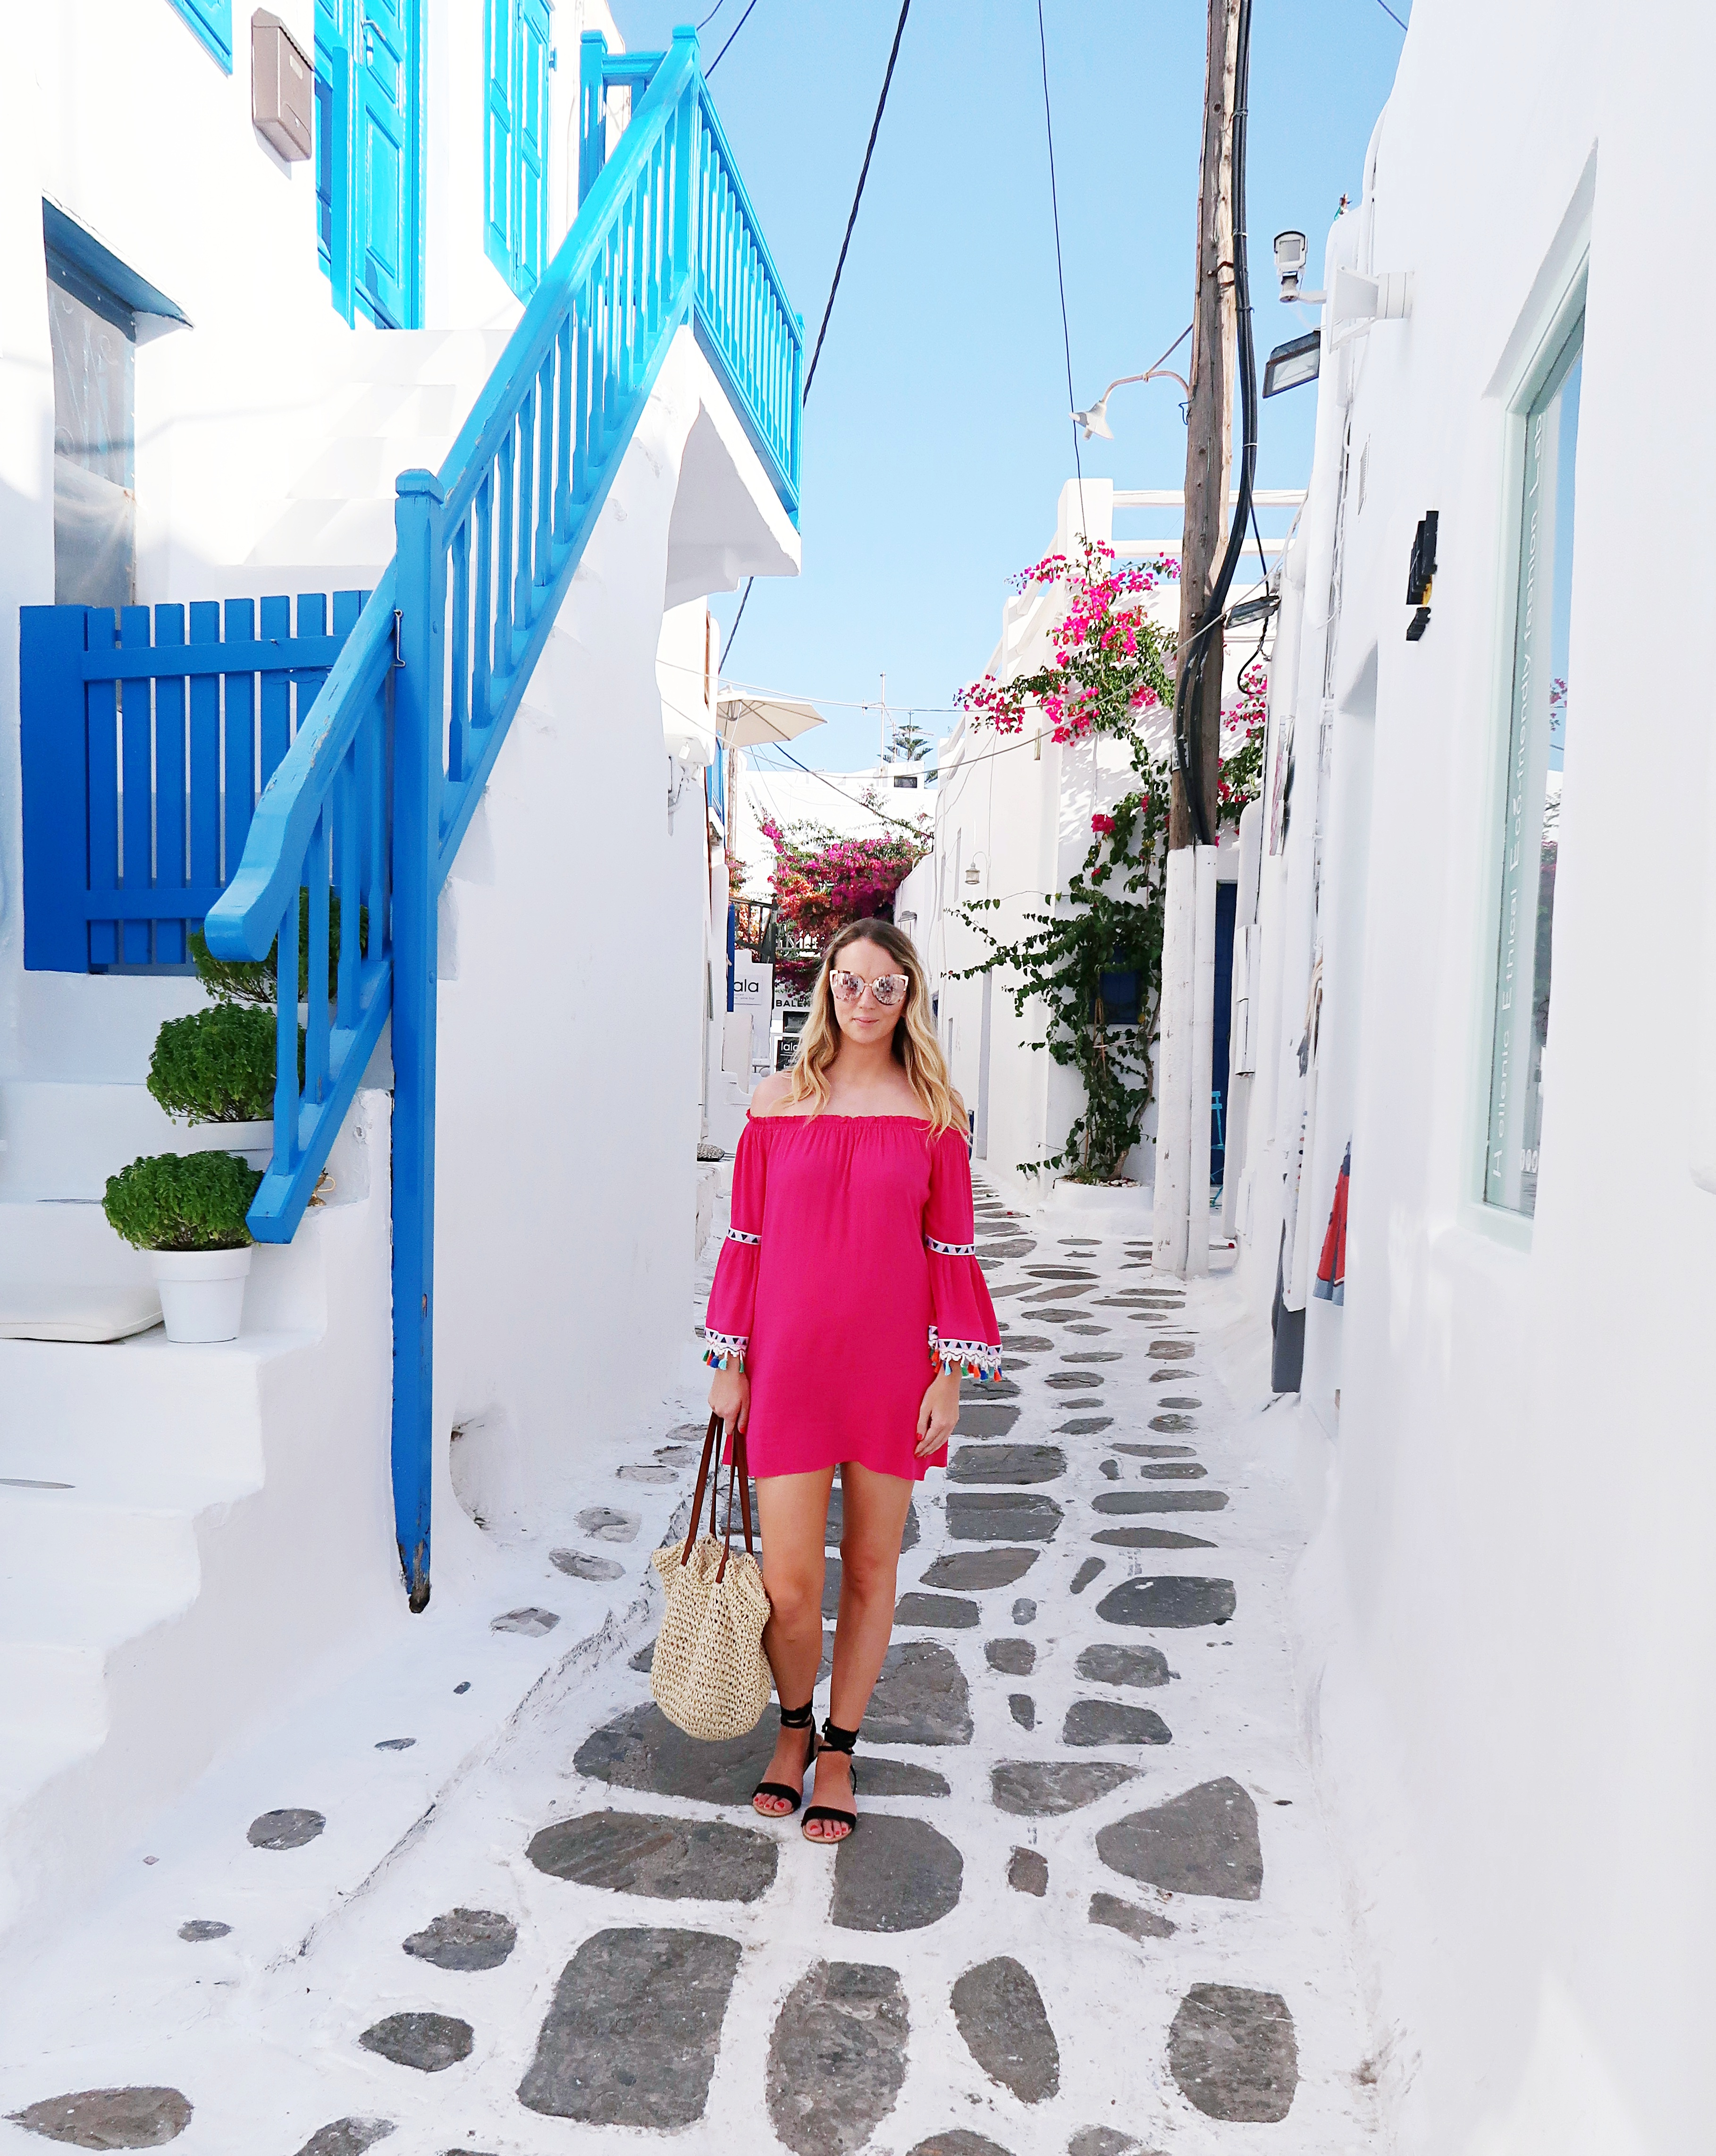 Mykonos town - why you should visit Mykonos